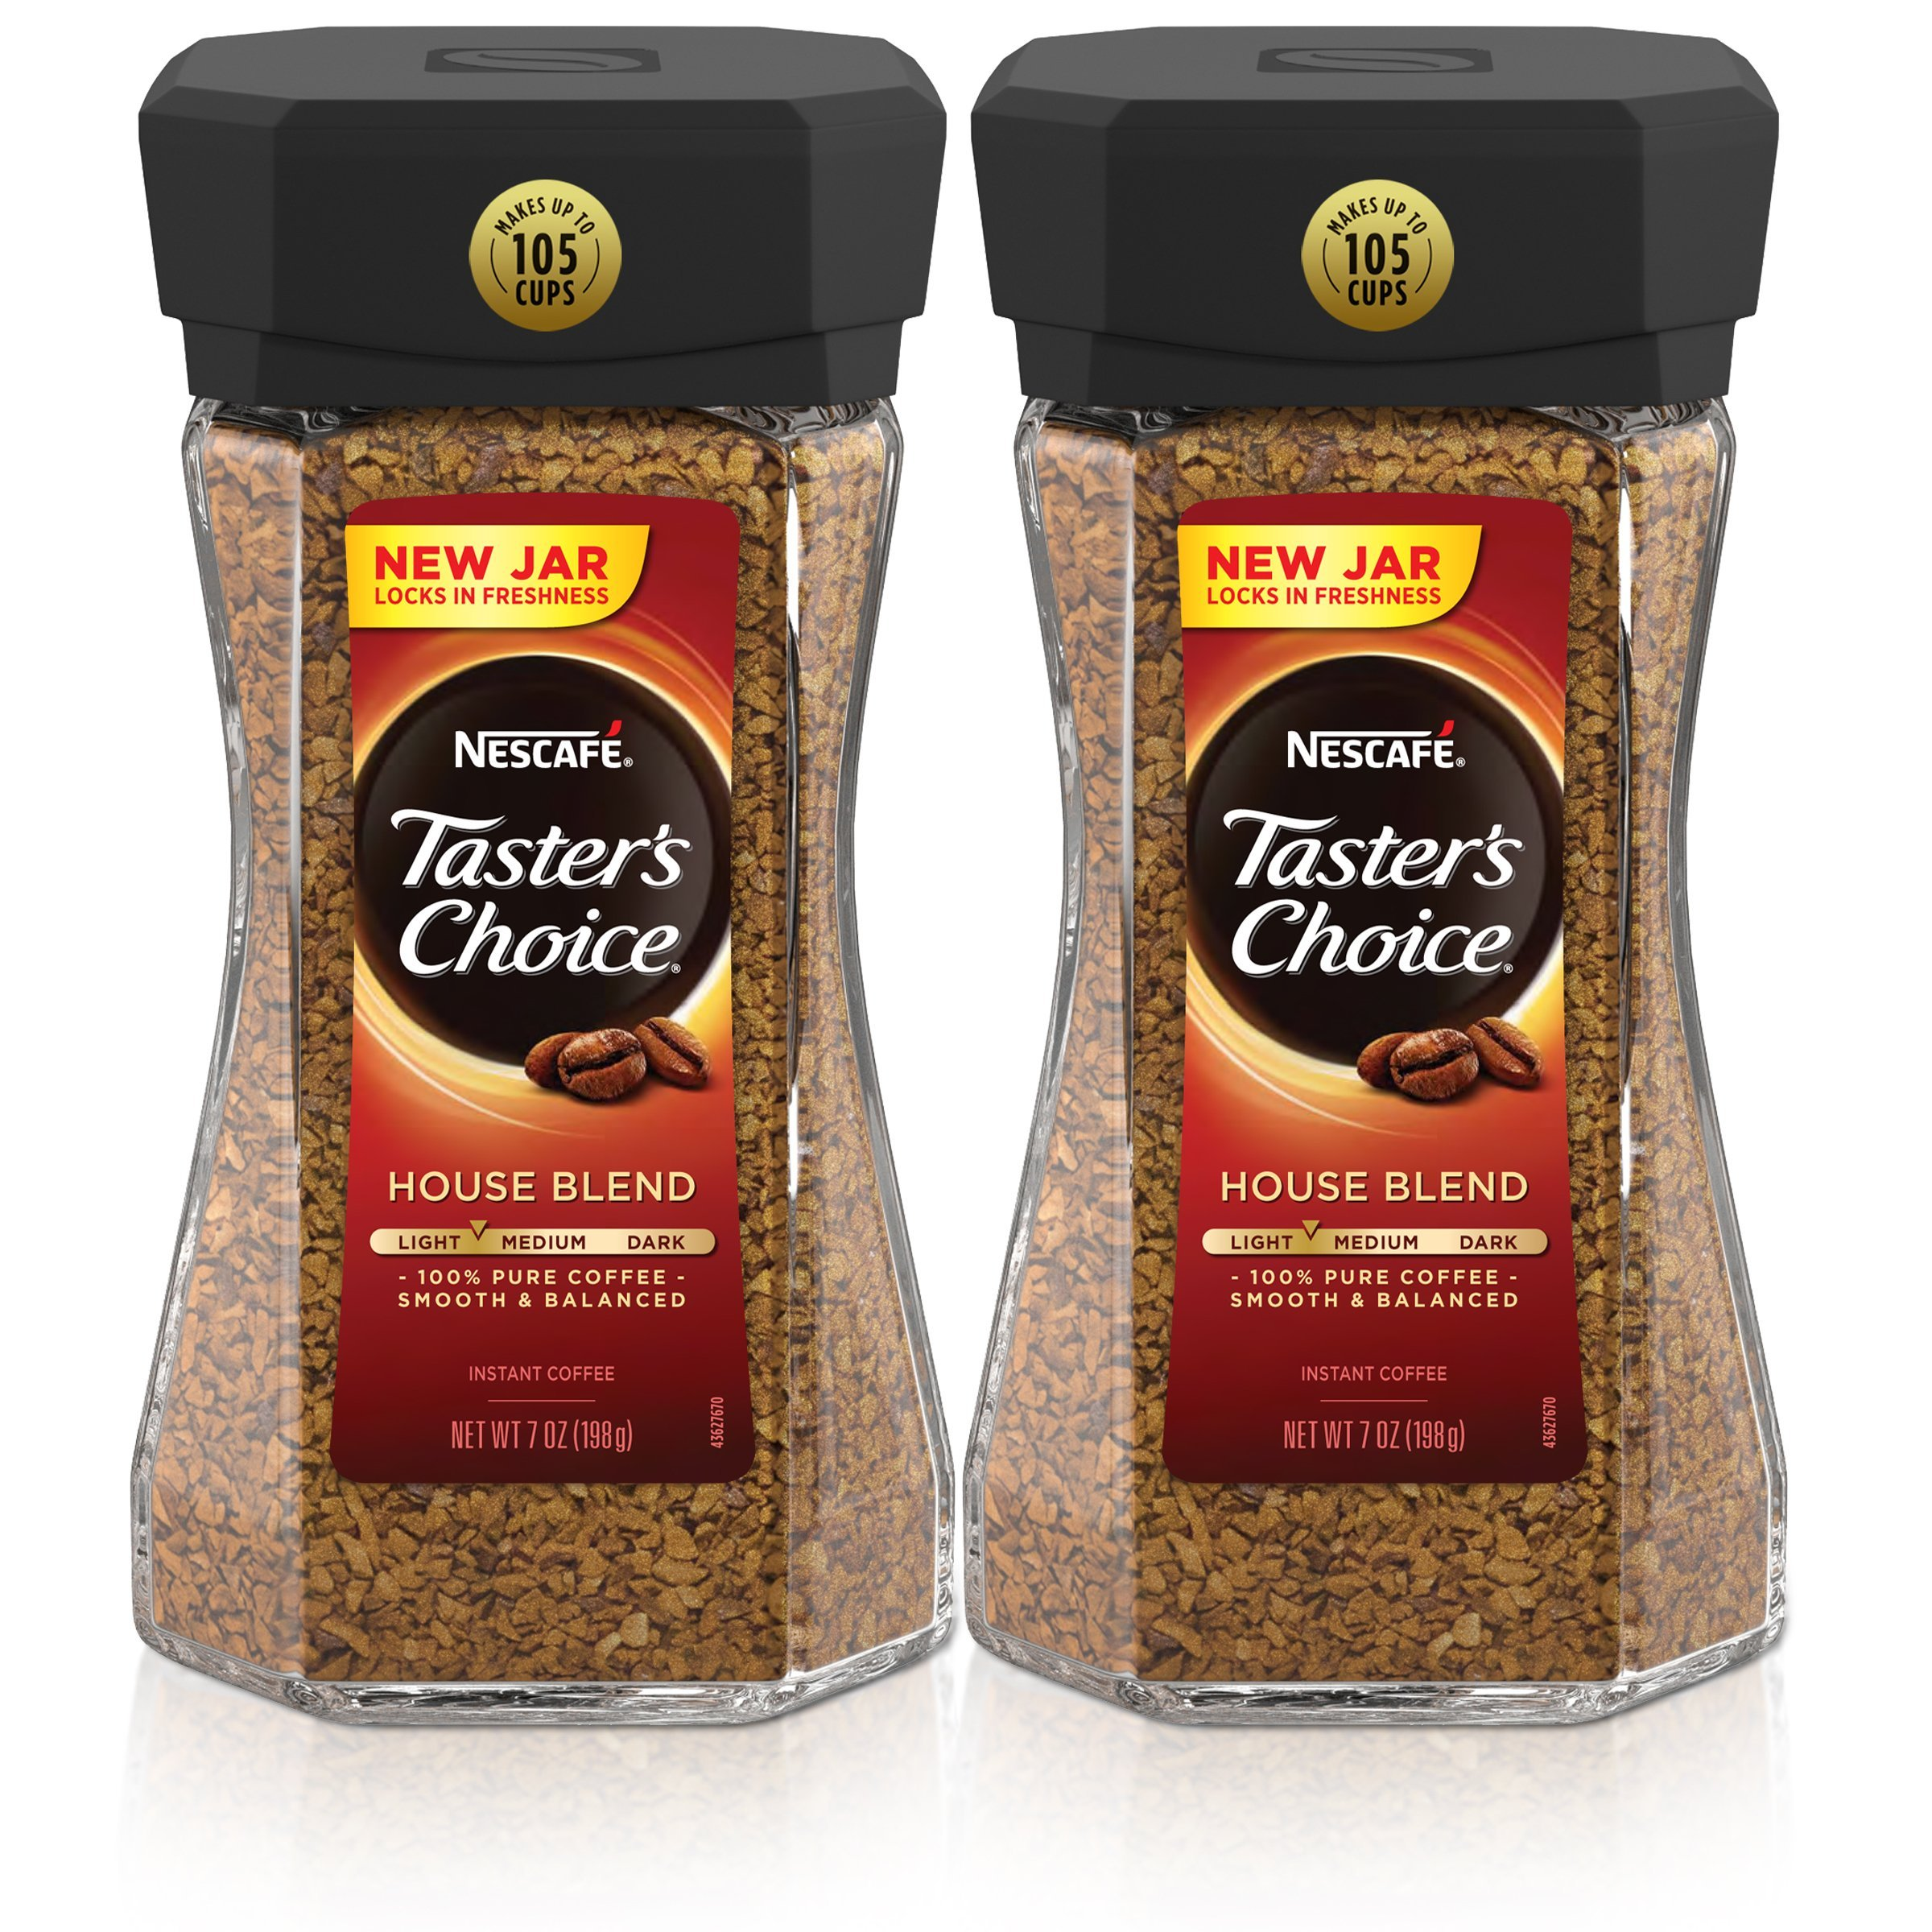 Nescafe Taster's Choice House Blend Instant Coffee, 7 Ounce (Pack of 2) by Nescafé